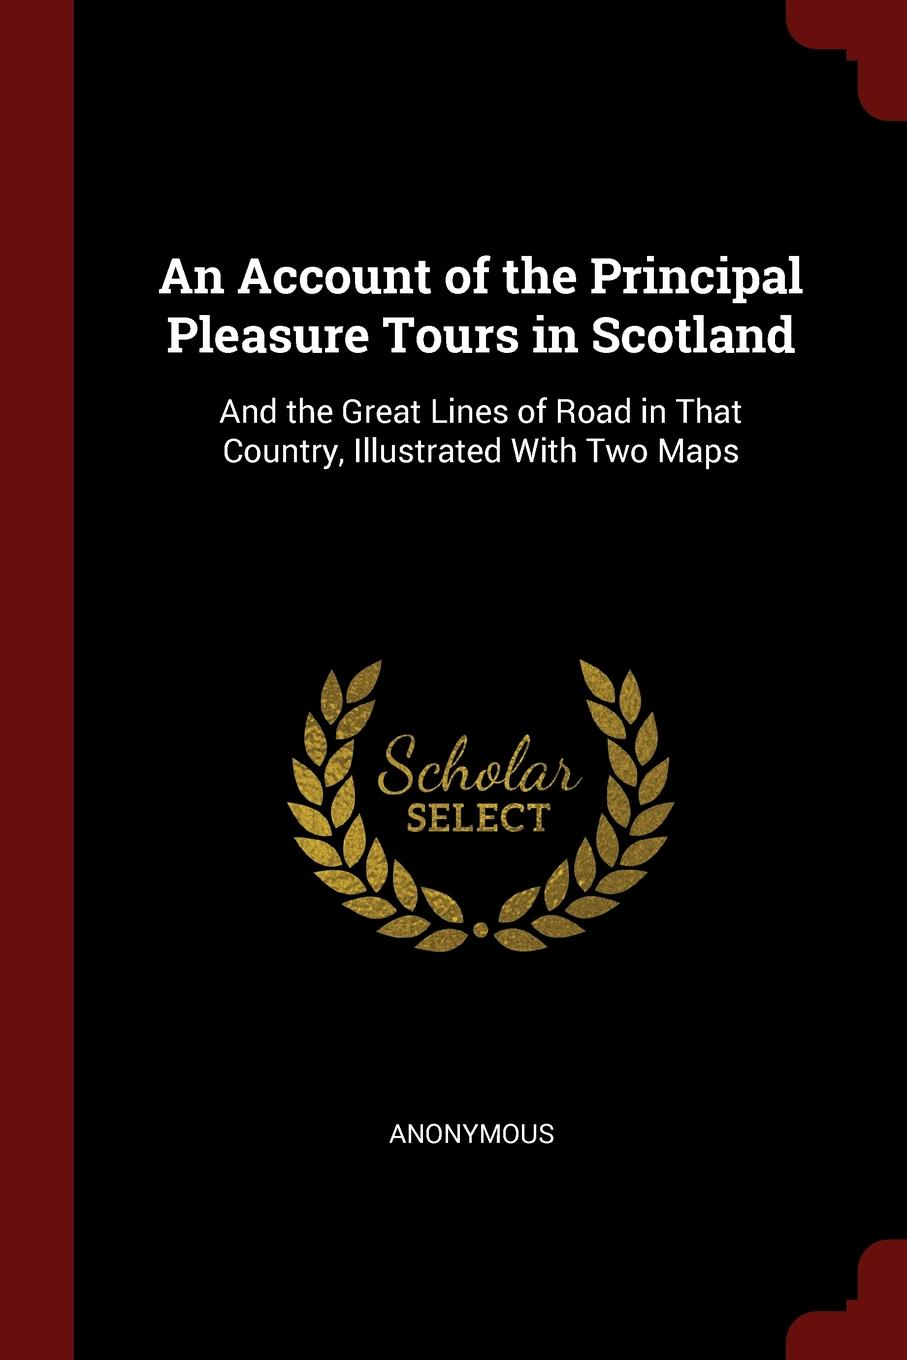 M. l'abbé Trochon An Account of the Principal Pleasure Tours in Scotland. And the Great Lines of Road in That Country, Illustrated With Two Maps